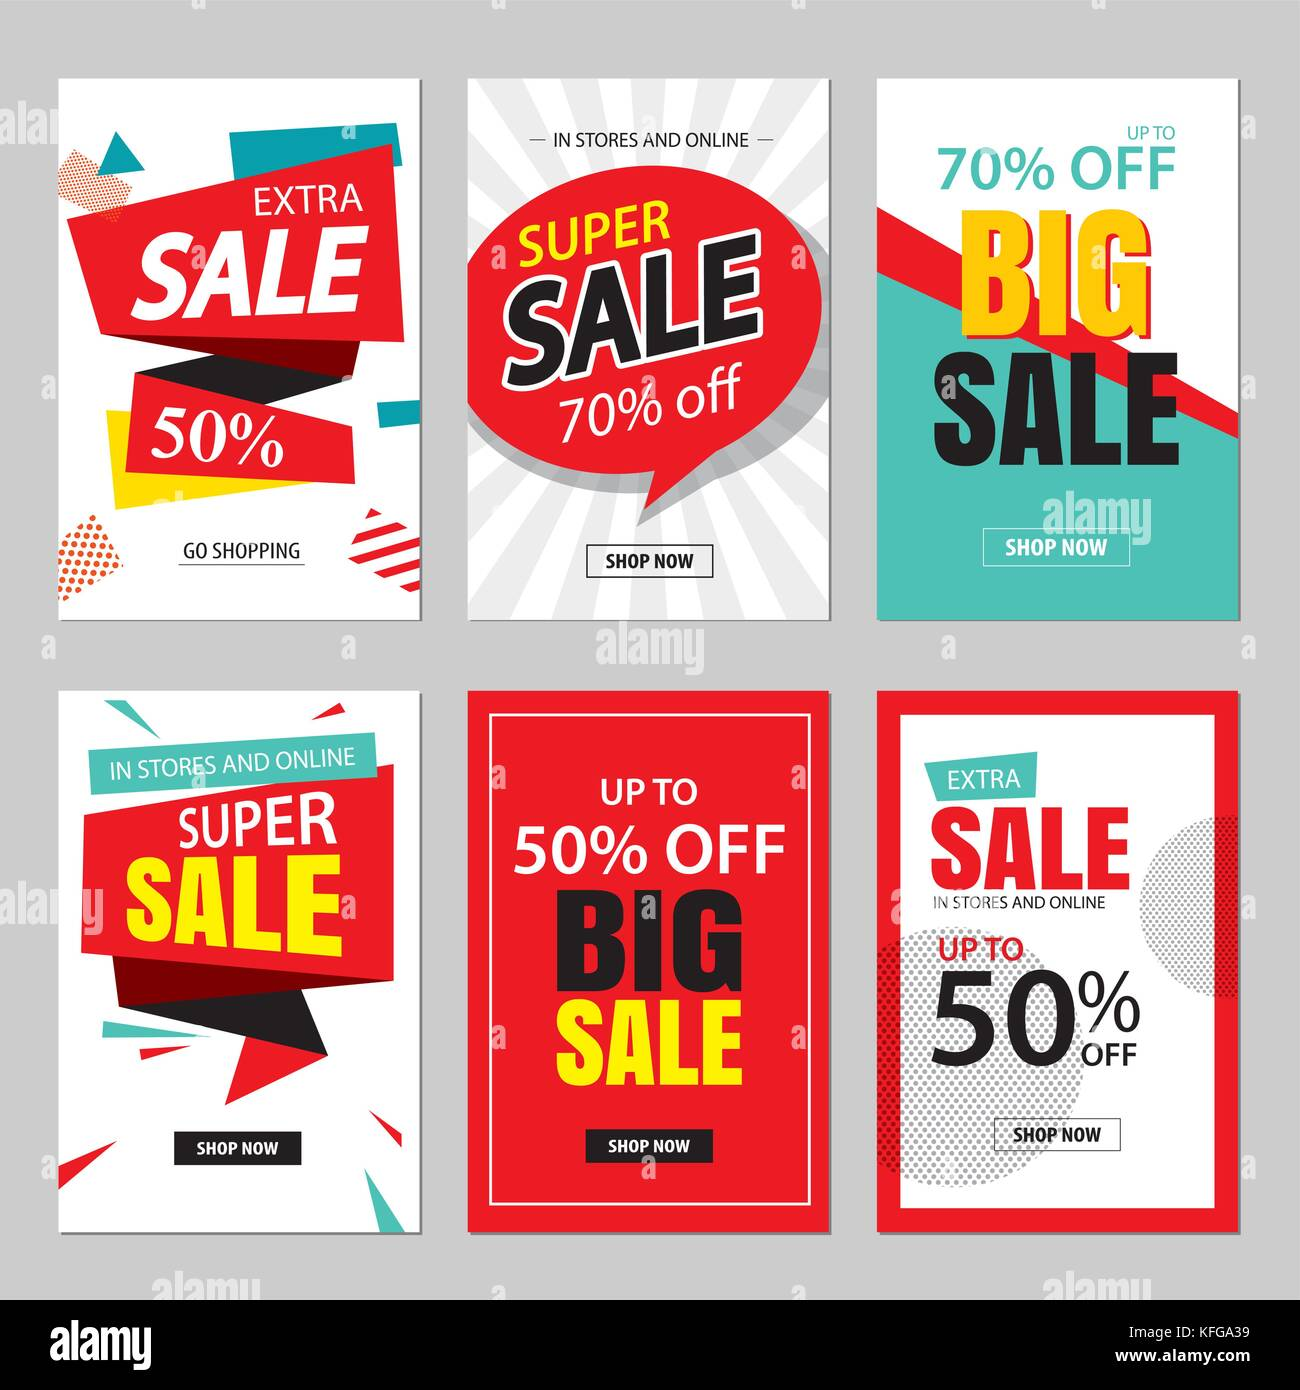 Set Of Sale Website Banner Templatescial Media Banners For Online